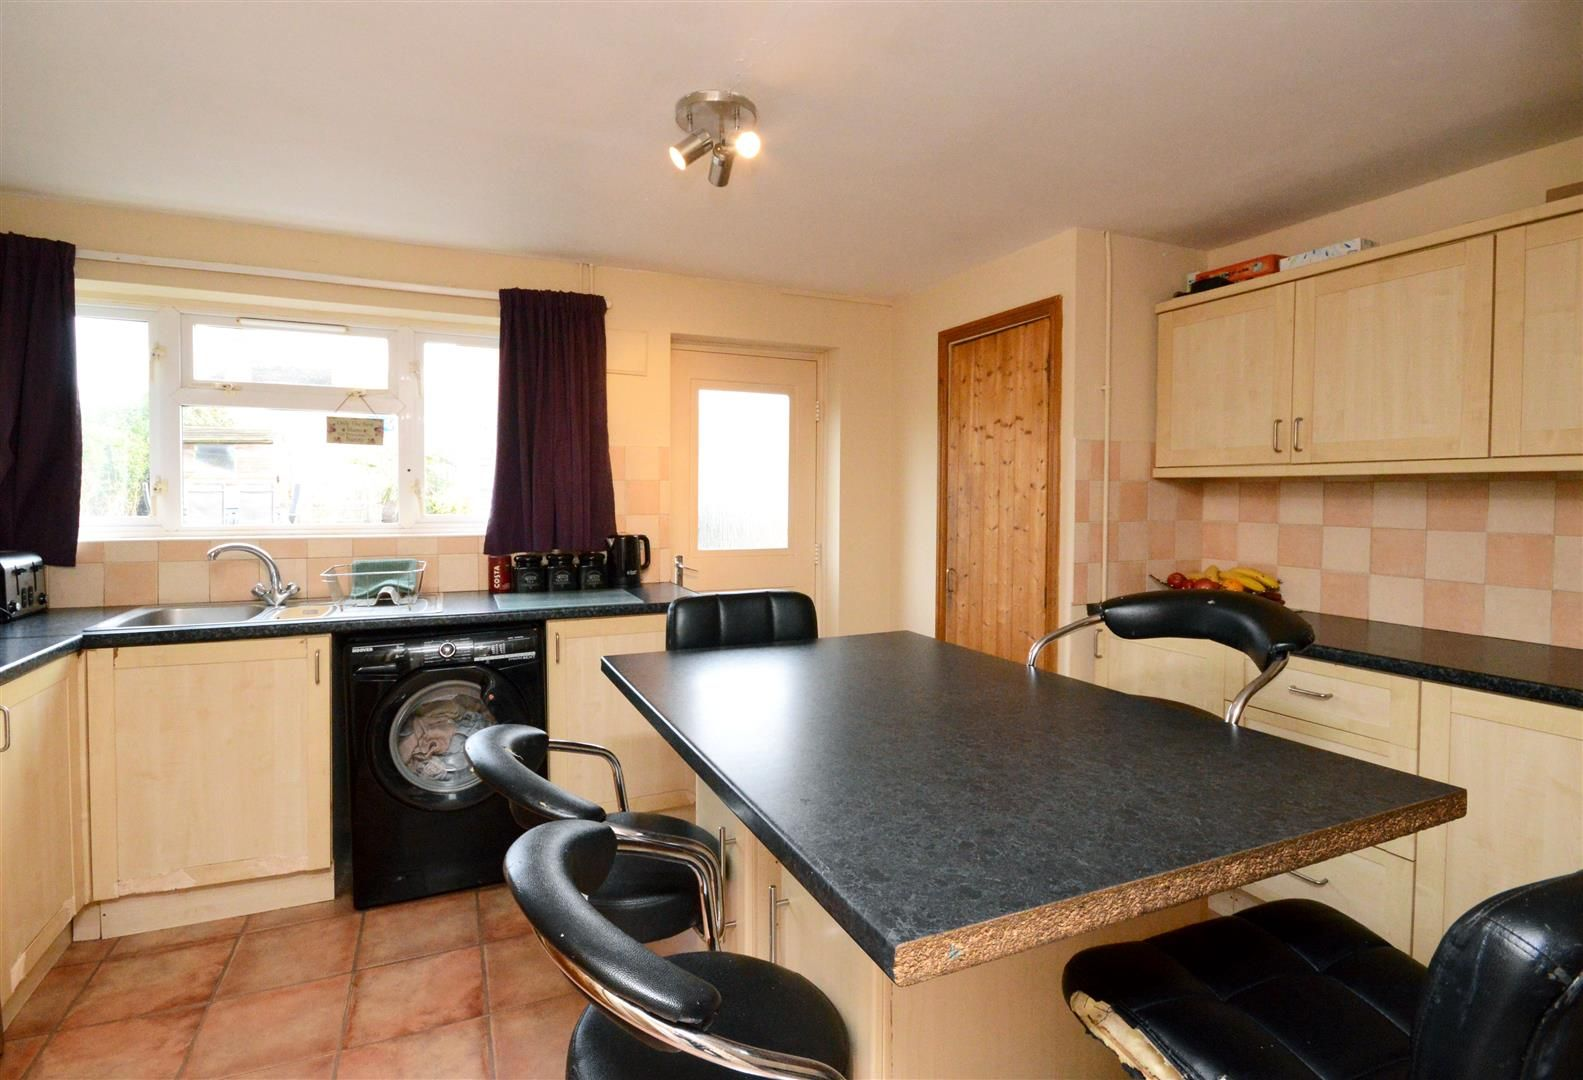 3 bed terraced for sale in Weobley  - Property Image 2